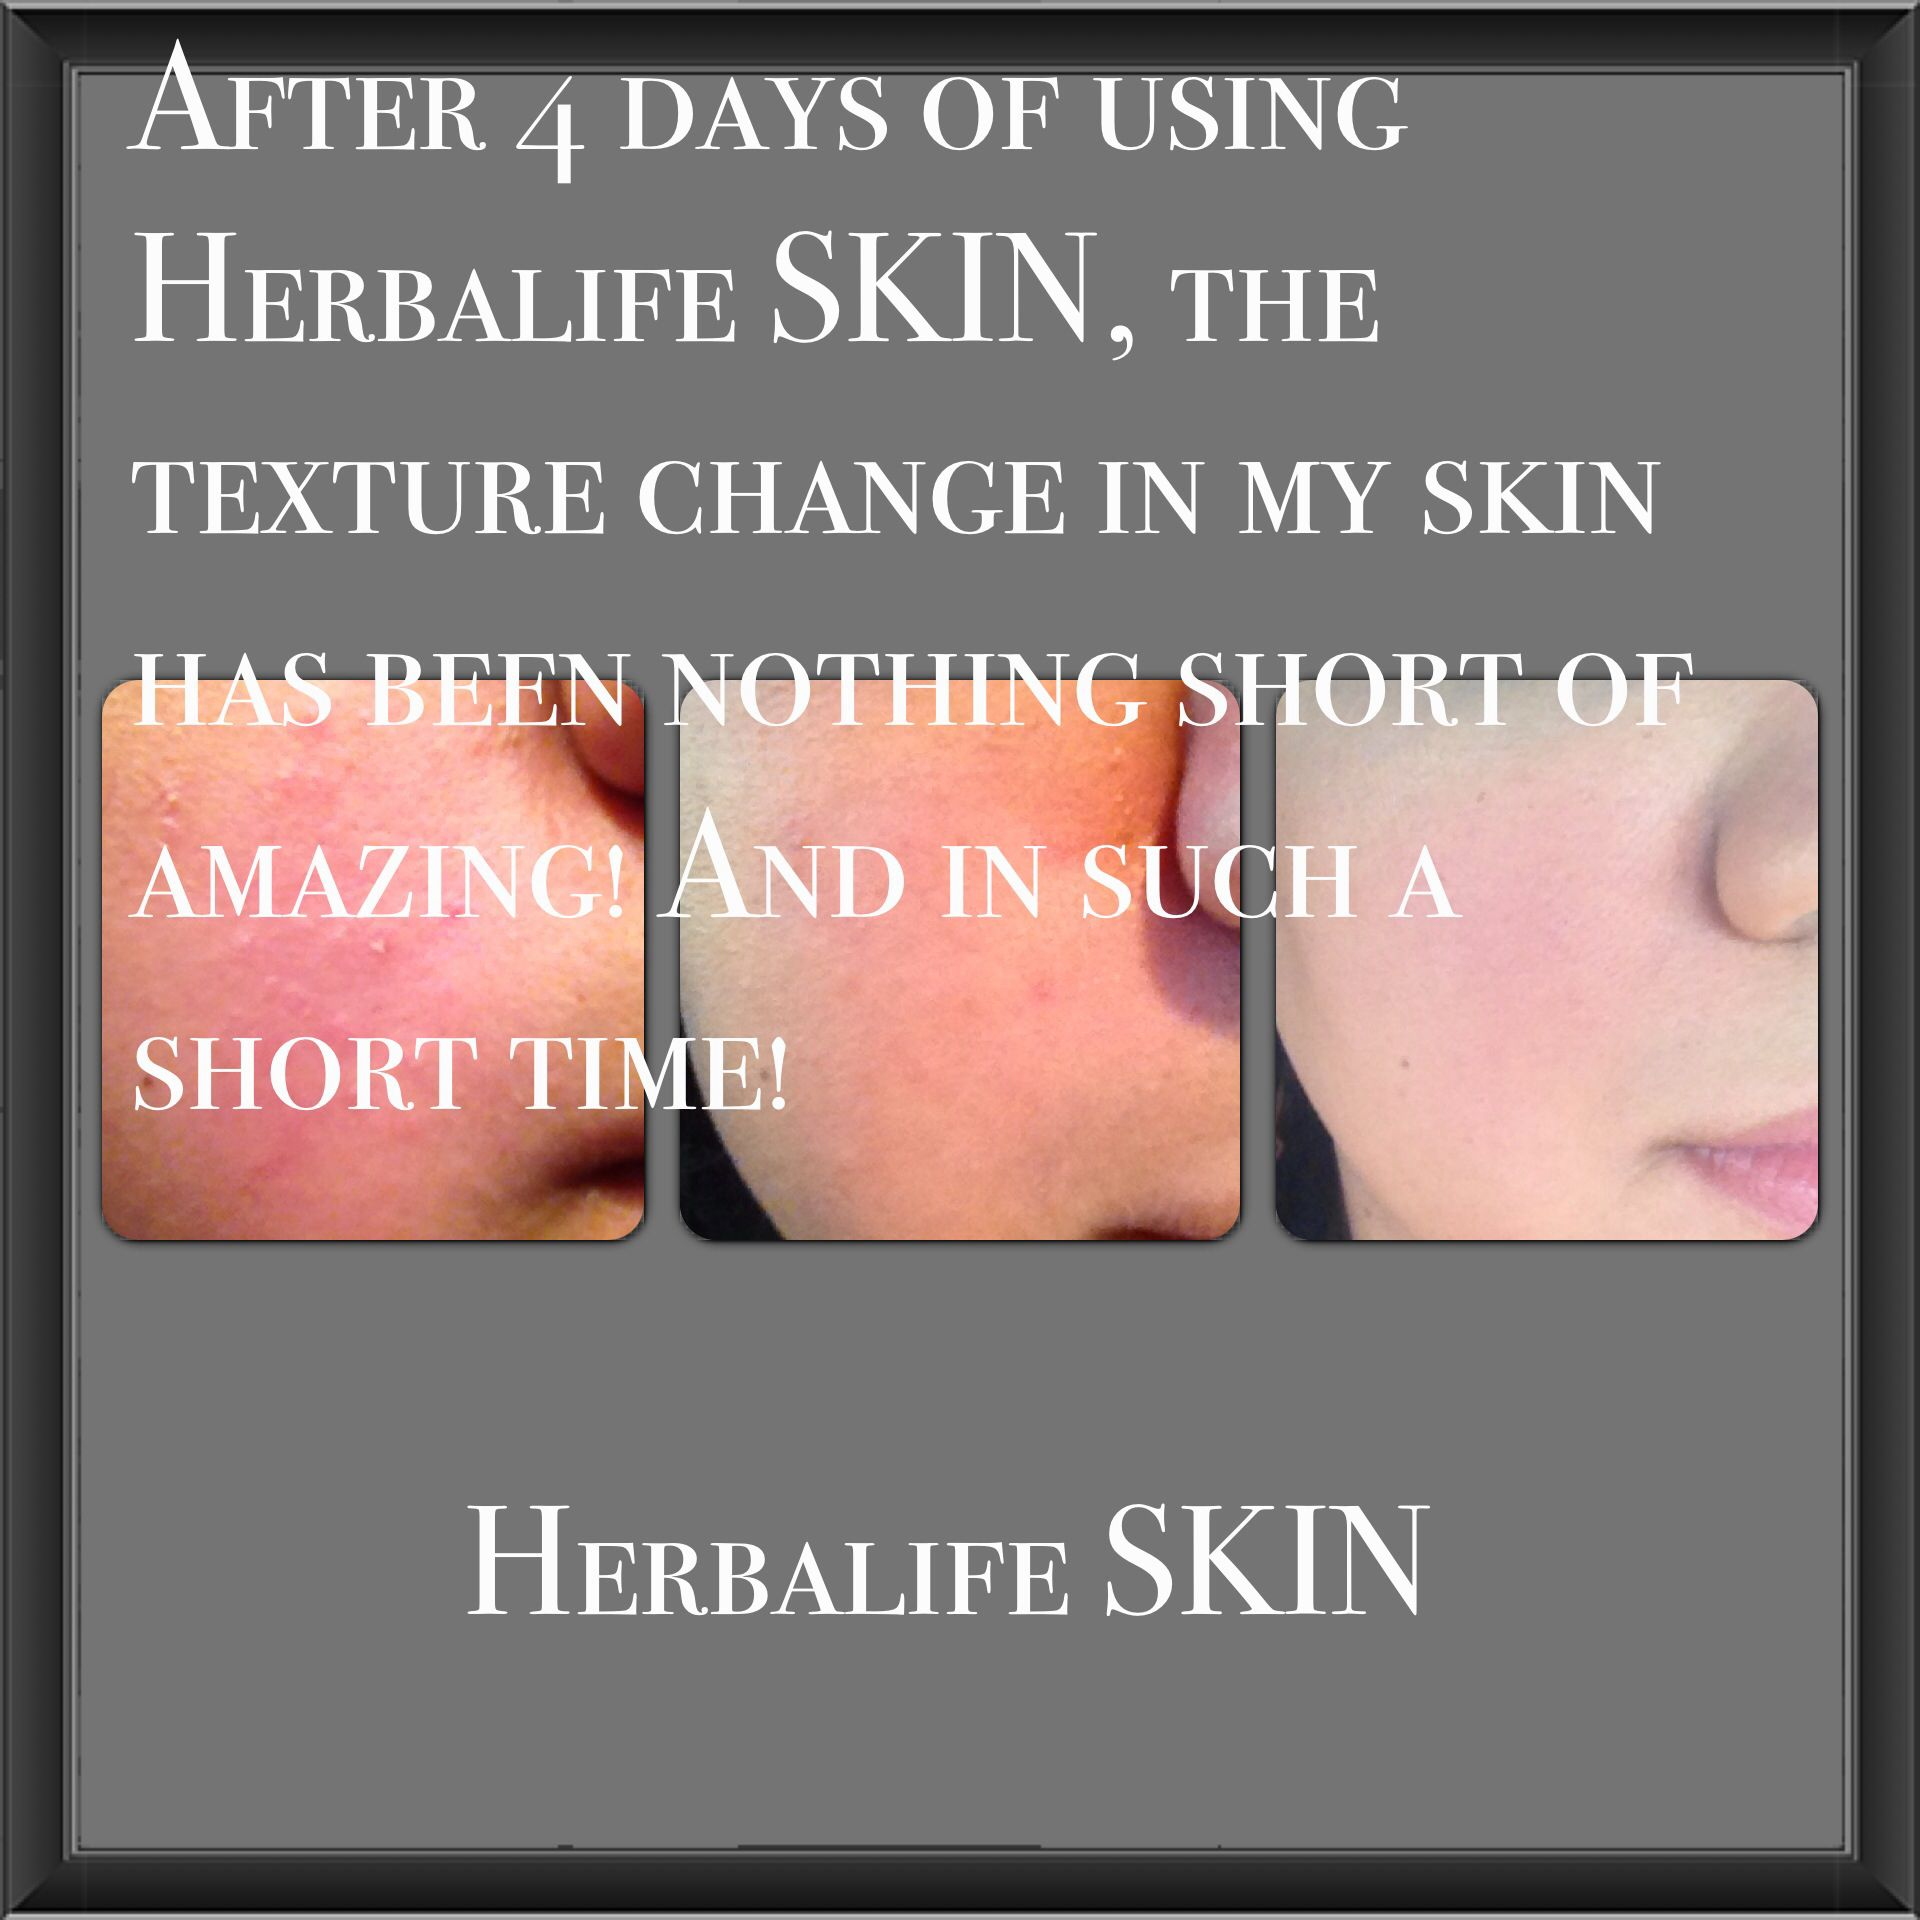 Care herbal life product skin - Great Results From Herbalife Skin For Your Custom Needs Order Mail To Heather